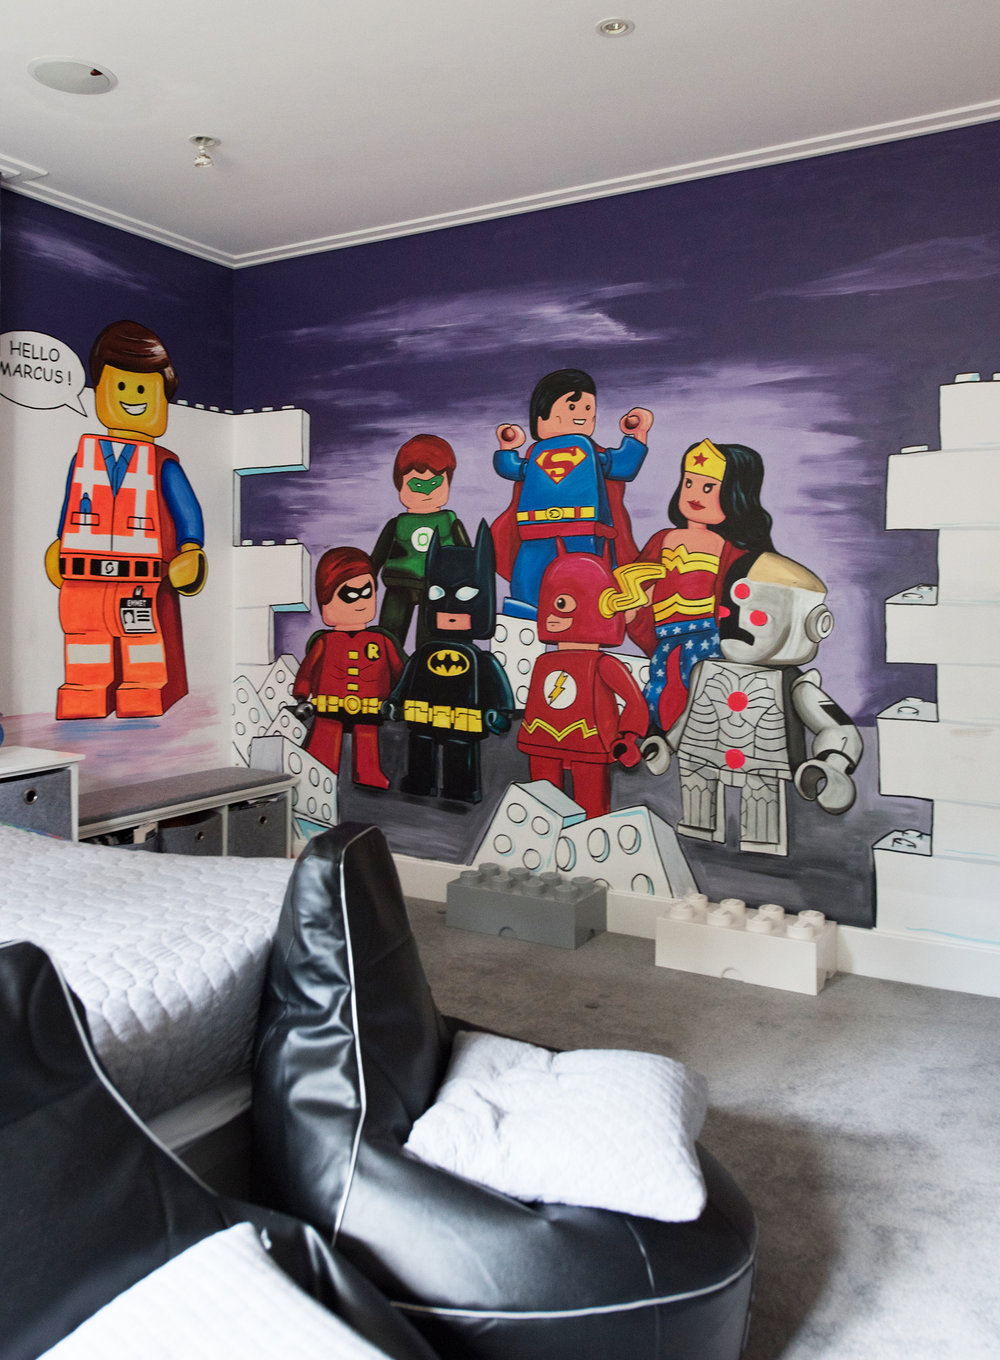 Murals and theme rooms - Murals don't have to be just for kids. Whether you are a band wishing to have a logo on a backdrop, a restaurant wishing for a sophisticated brand representation or even a thirty-something with a misspent youth playing Atari games who dreams of having their own 'Space Invaders' room, there is no limit to what can be achieved.